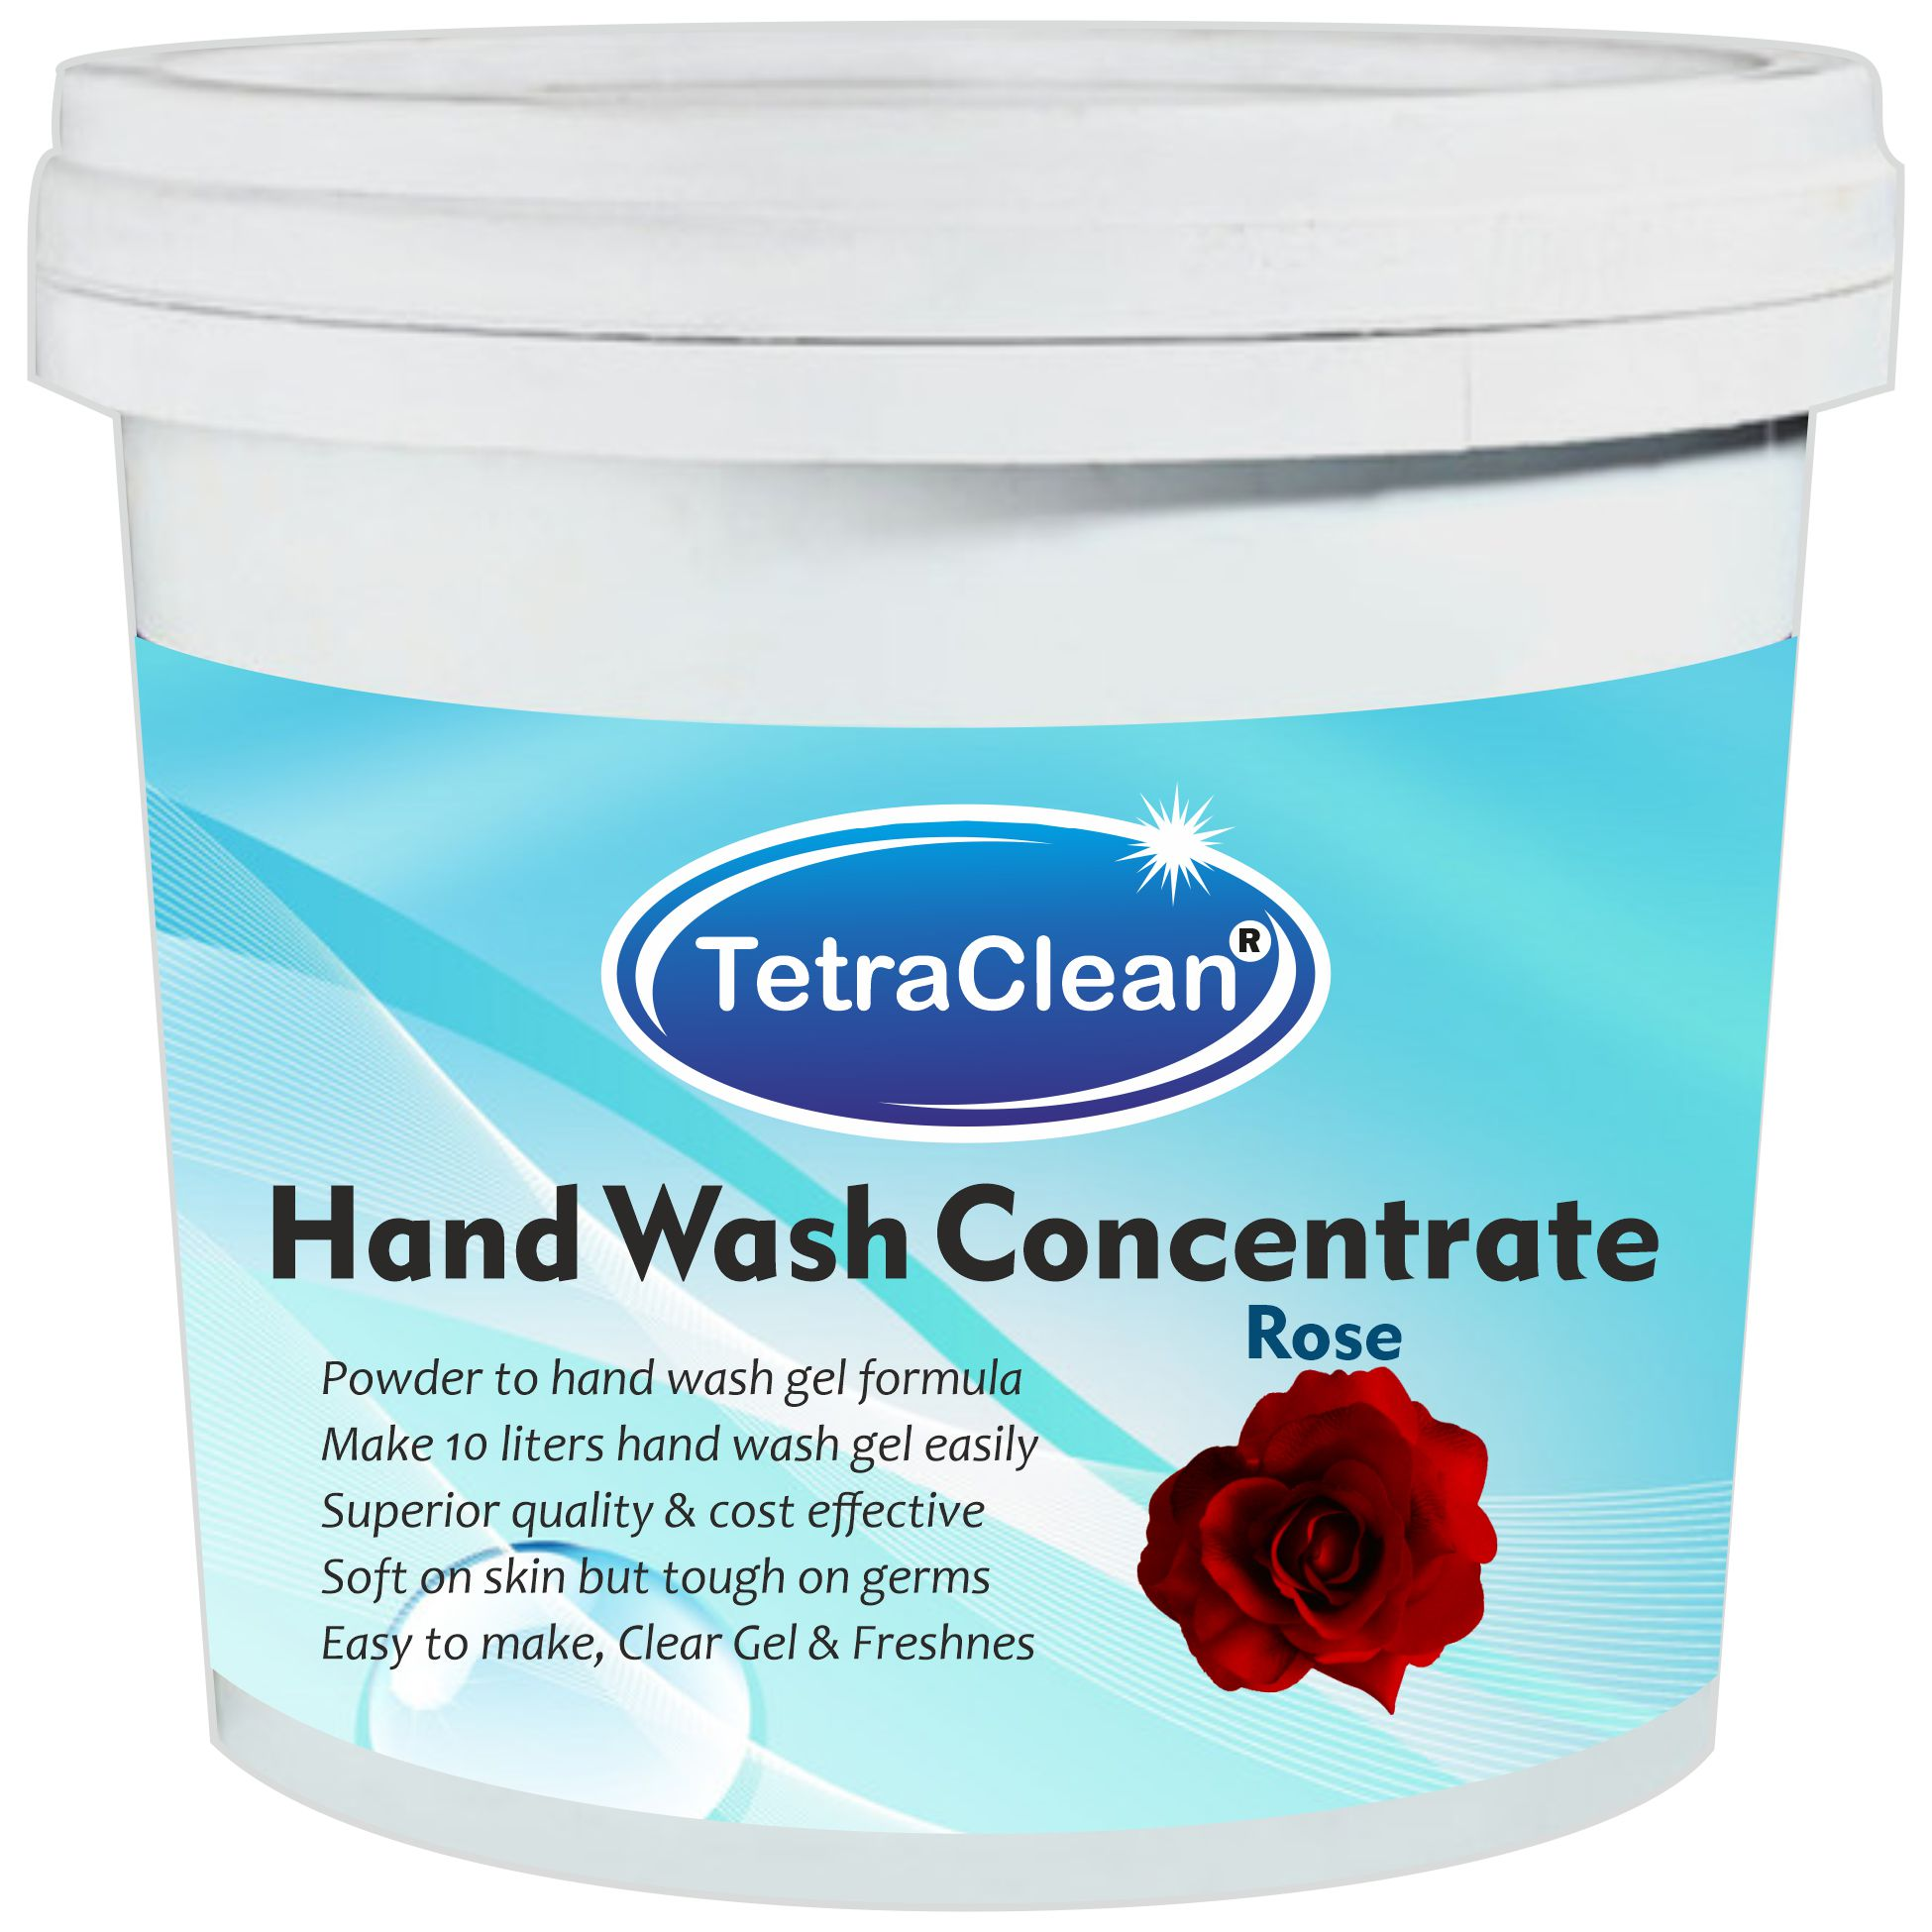 TetraClean Aloe Vera Hand Wash Concentrate Powder - 500gm packing